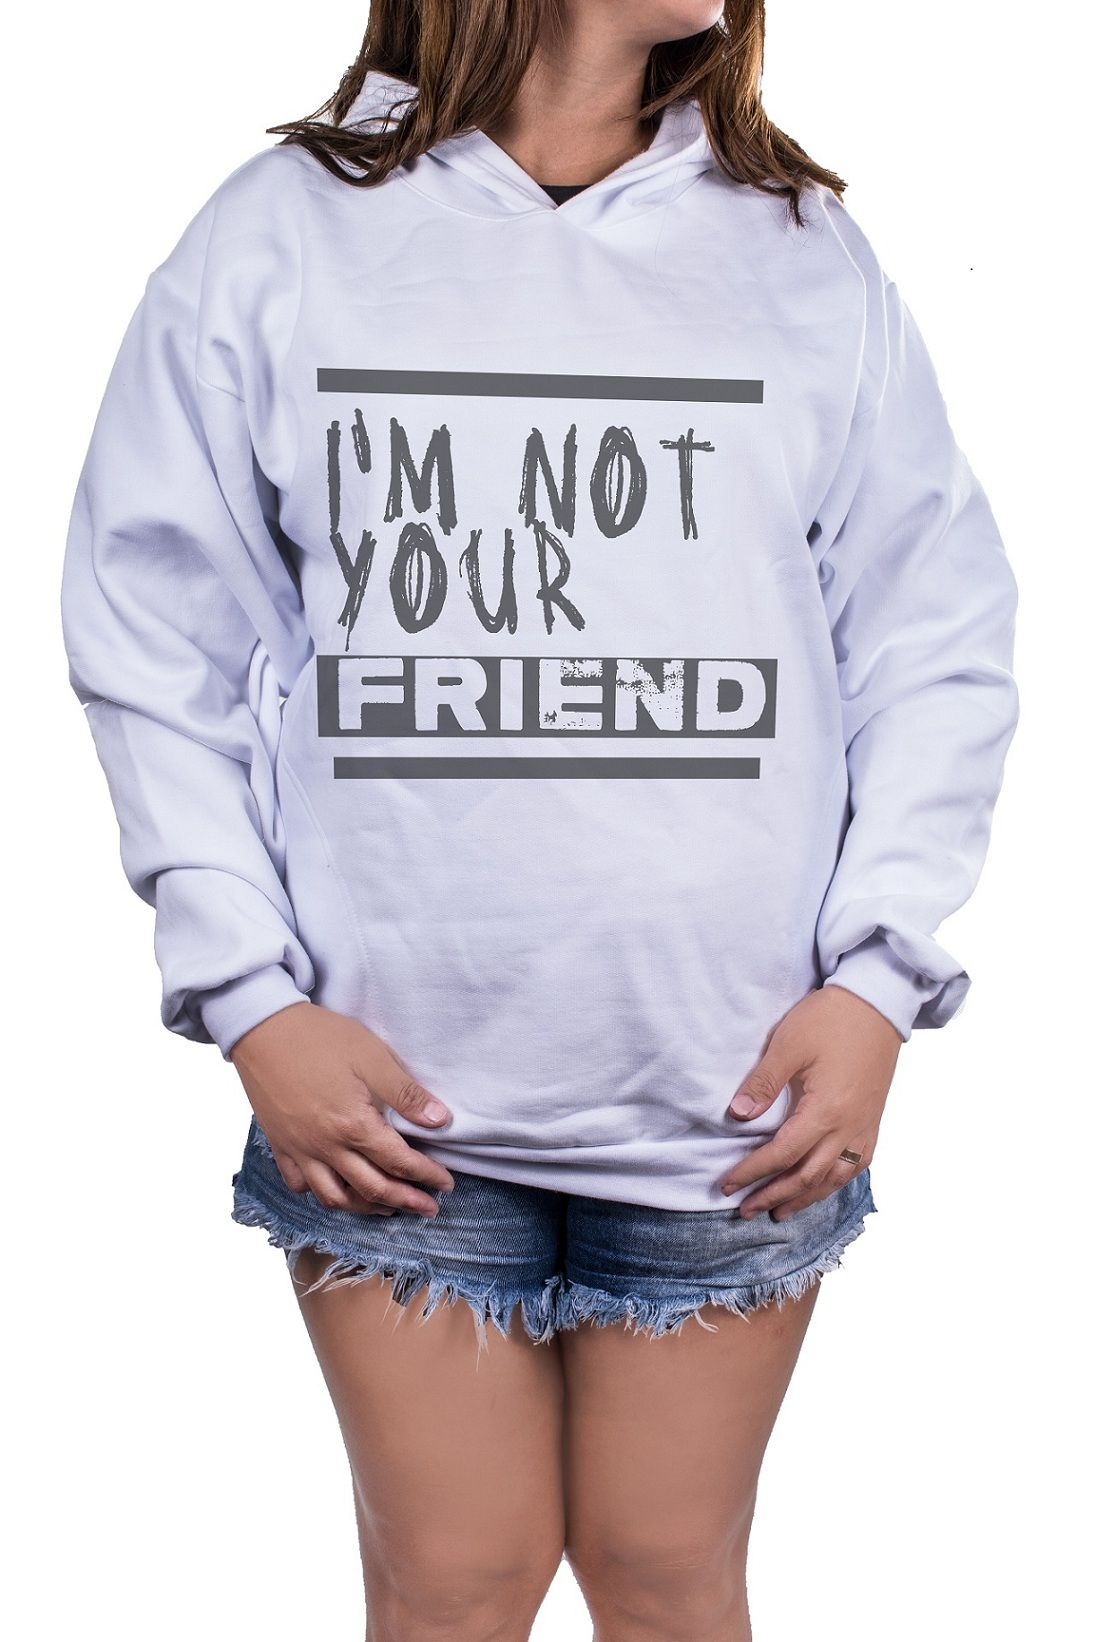 Blusa Feminina Moletom Estampada Estampa I'm Not Your Friend